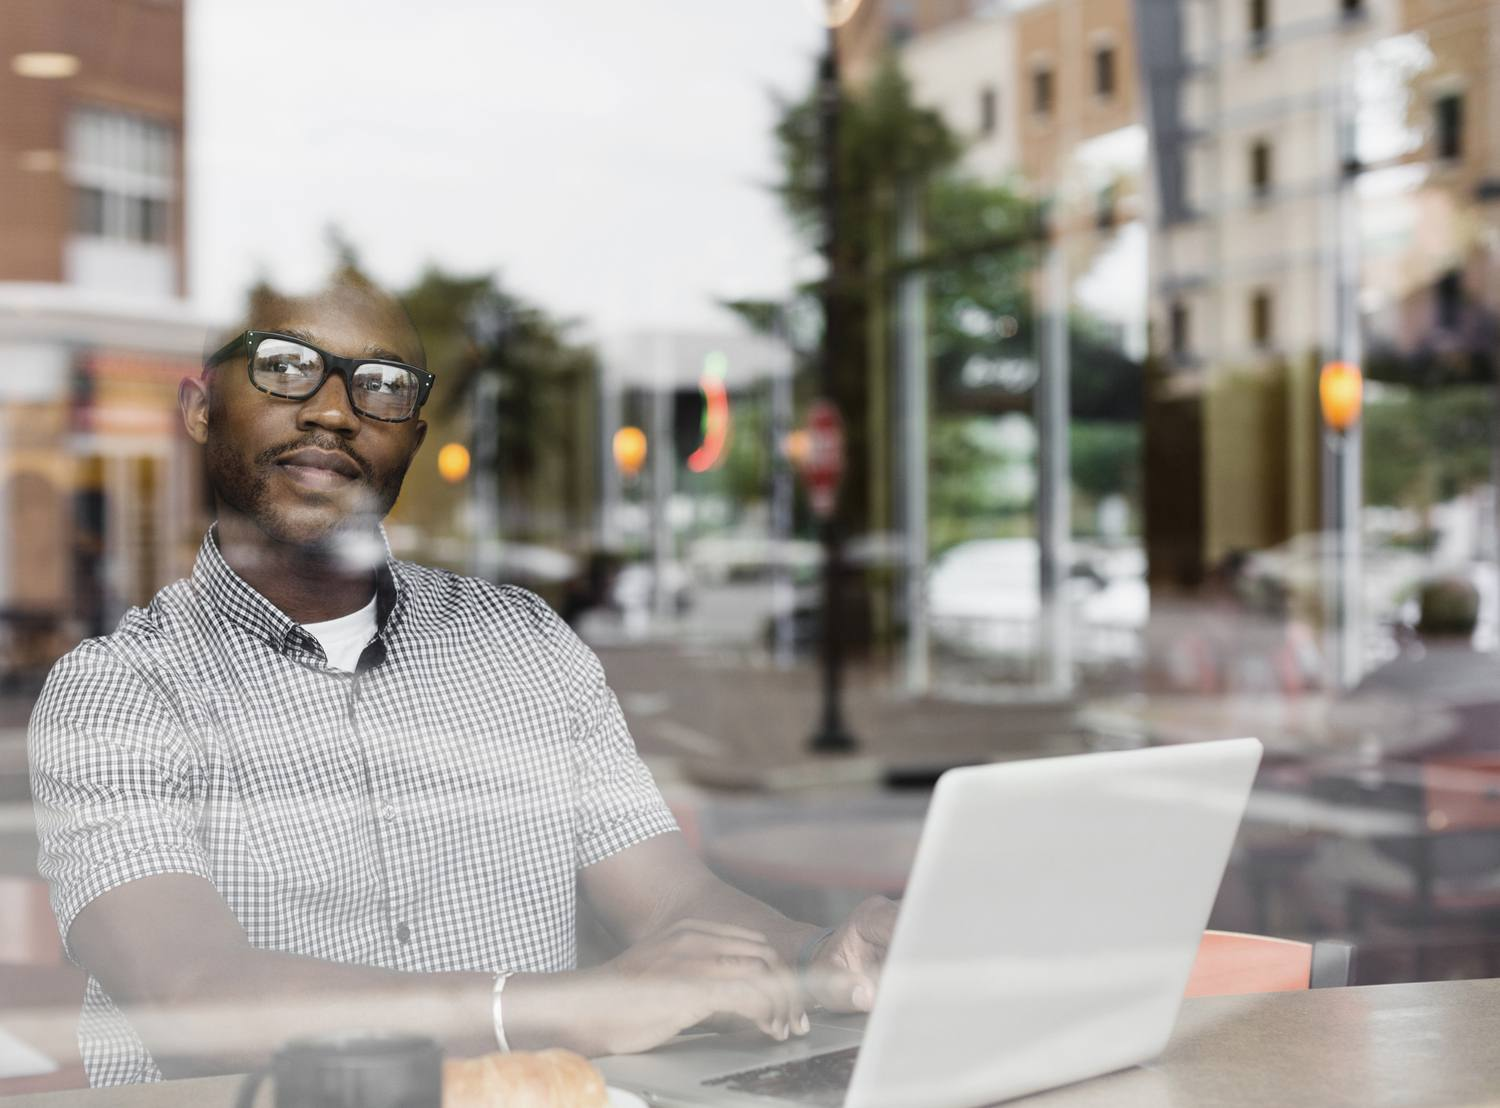 Business person working form remote location using laptop